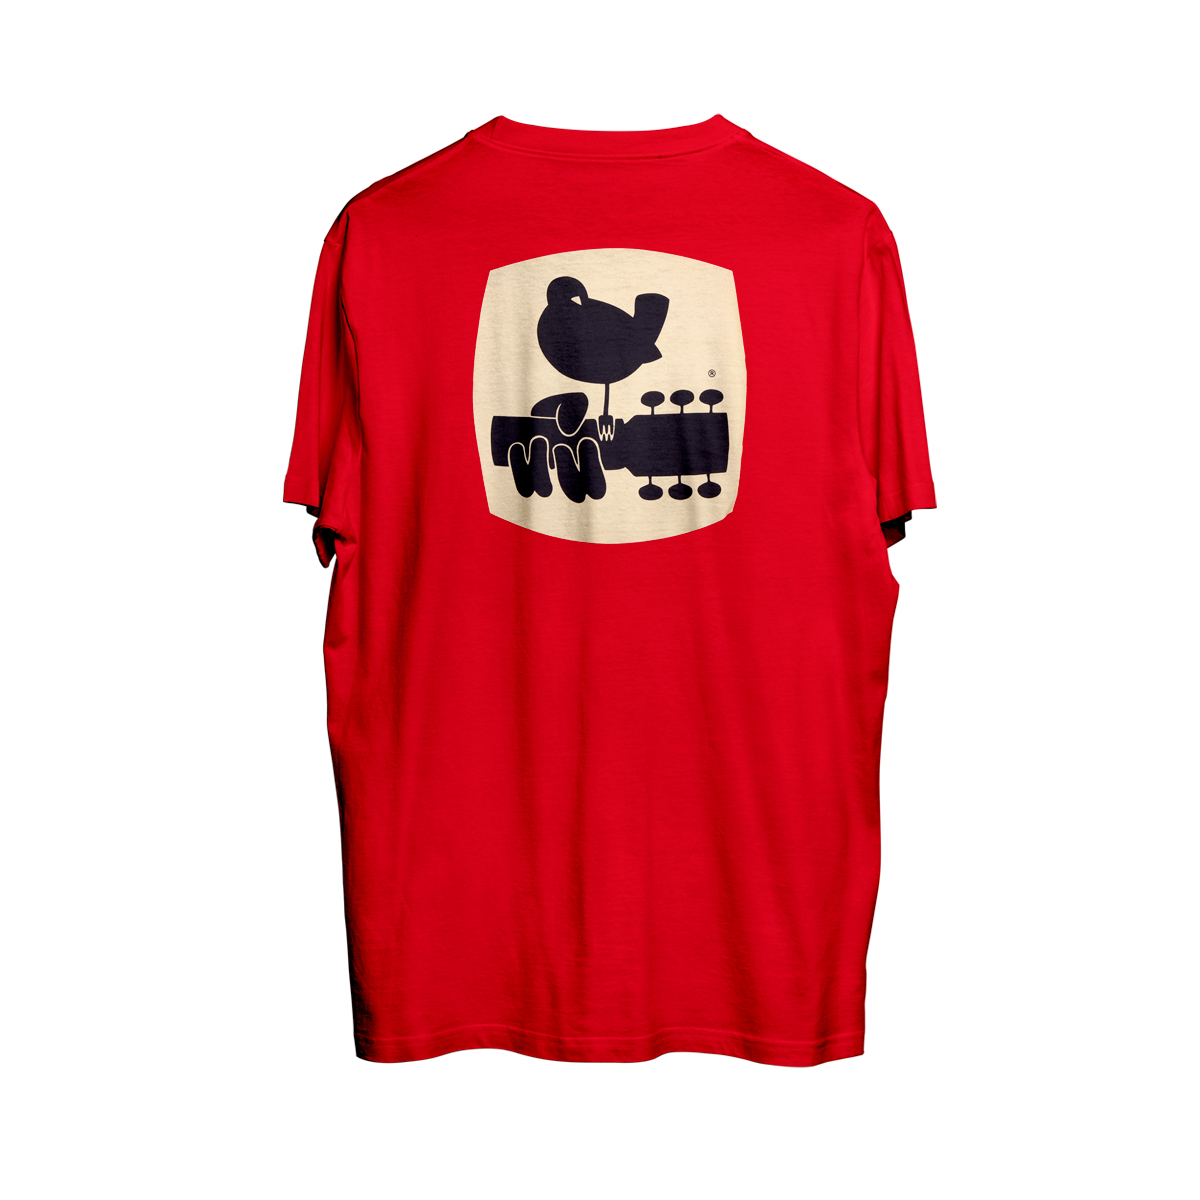 Woodstock x HUF Staff T-shirt